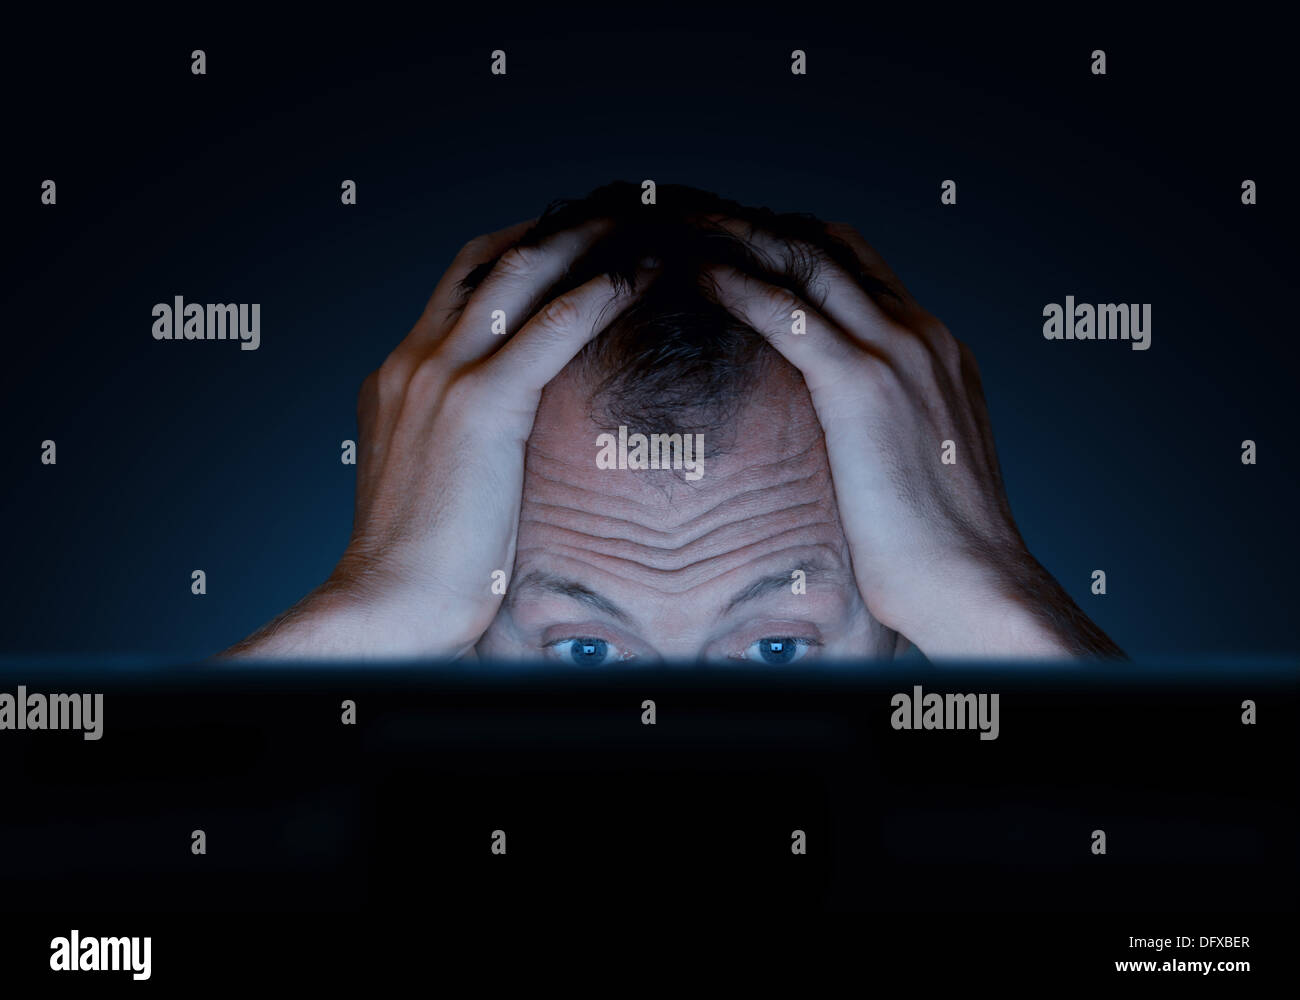 challenges of working at a computer - Stock Image